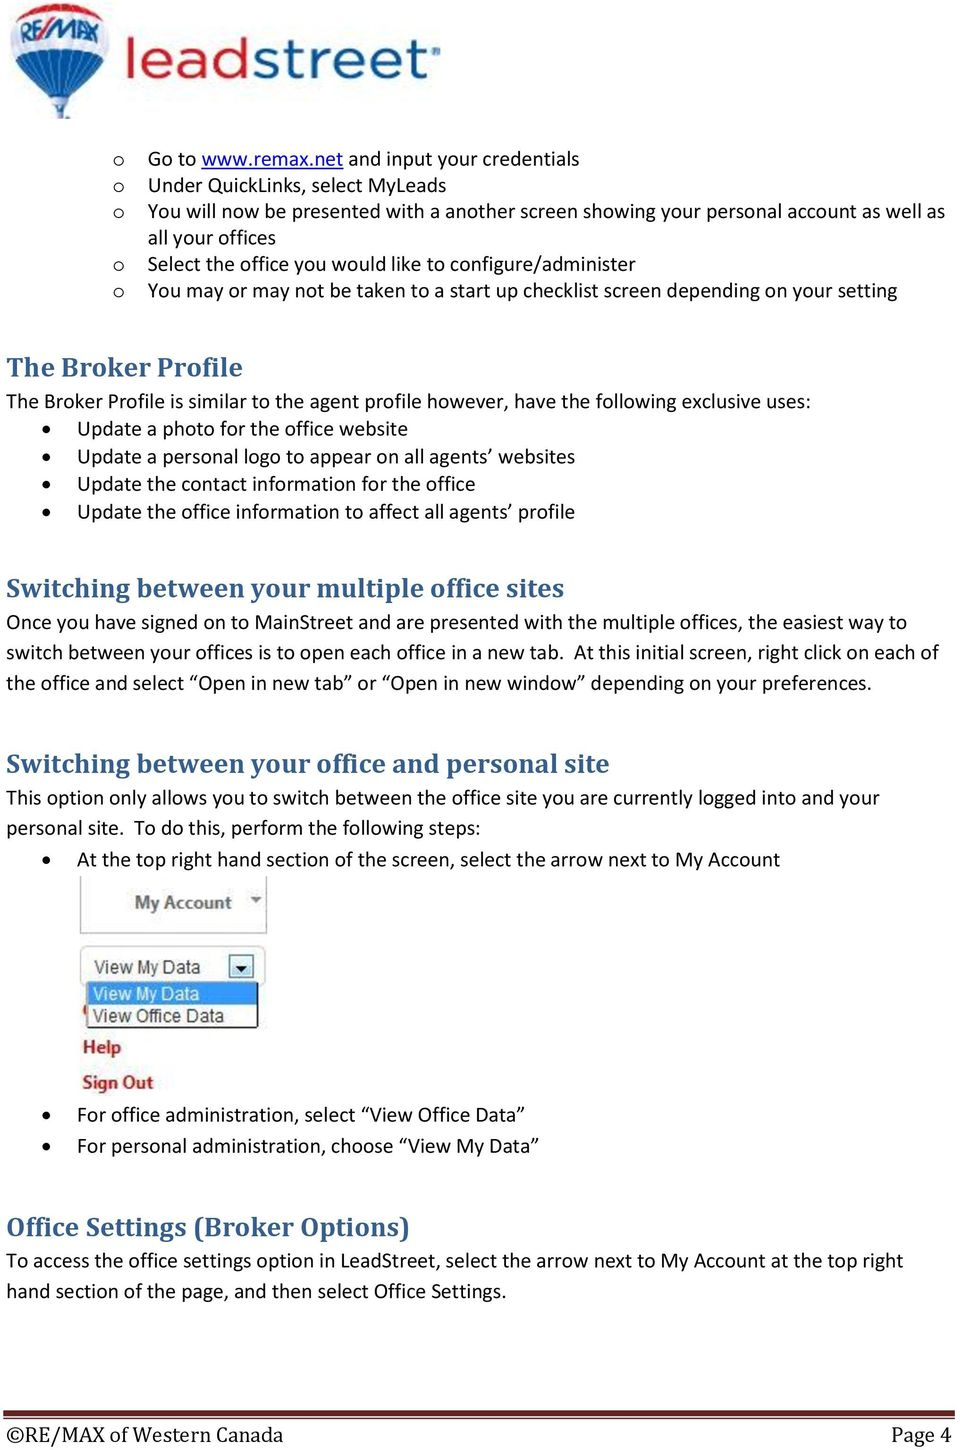 LeadStreet Broker Guide - PDF